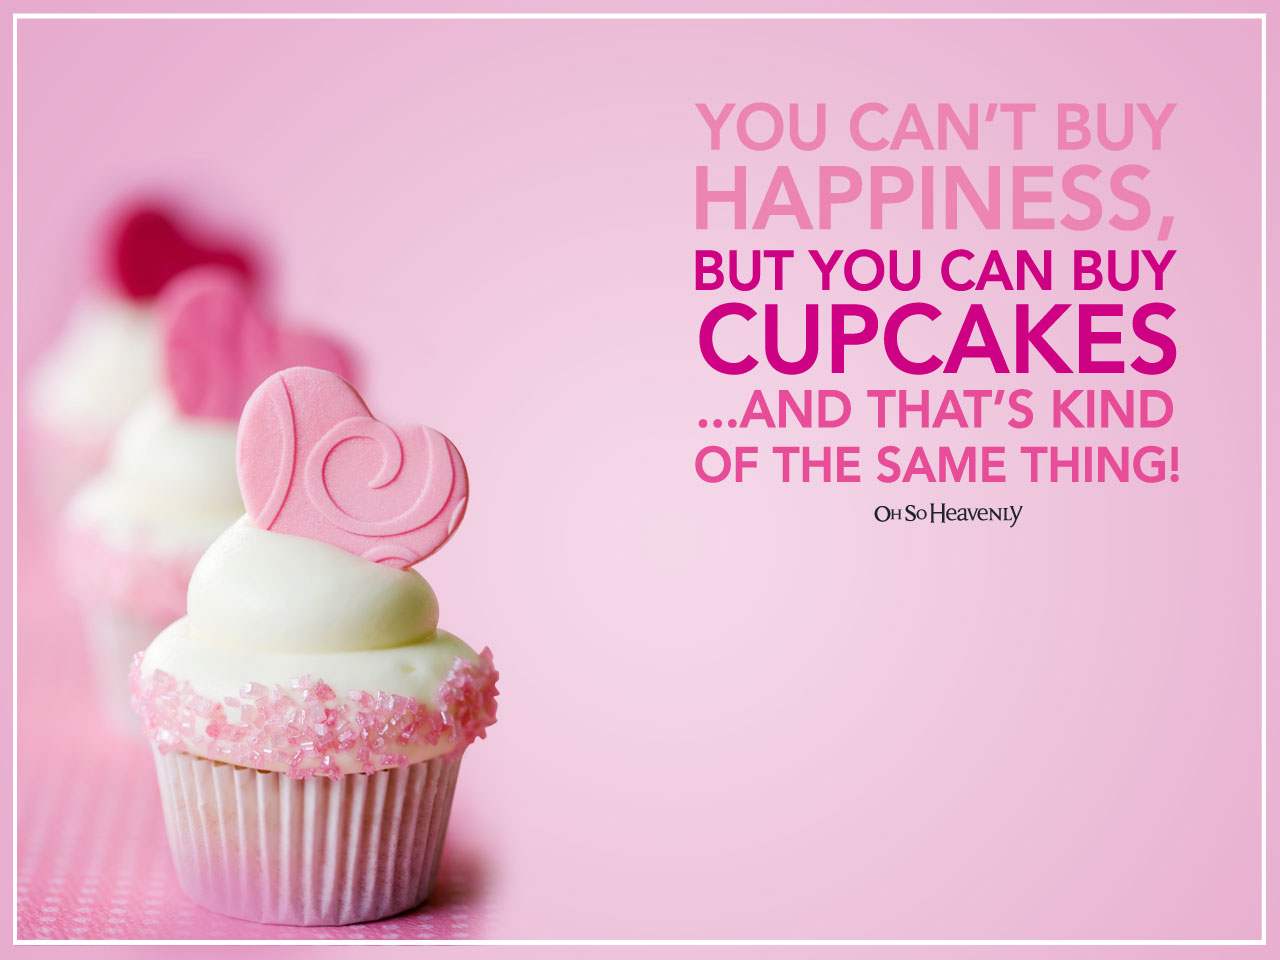 Cute Cupcakes Wallpaper Pretty up your computer